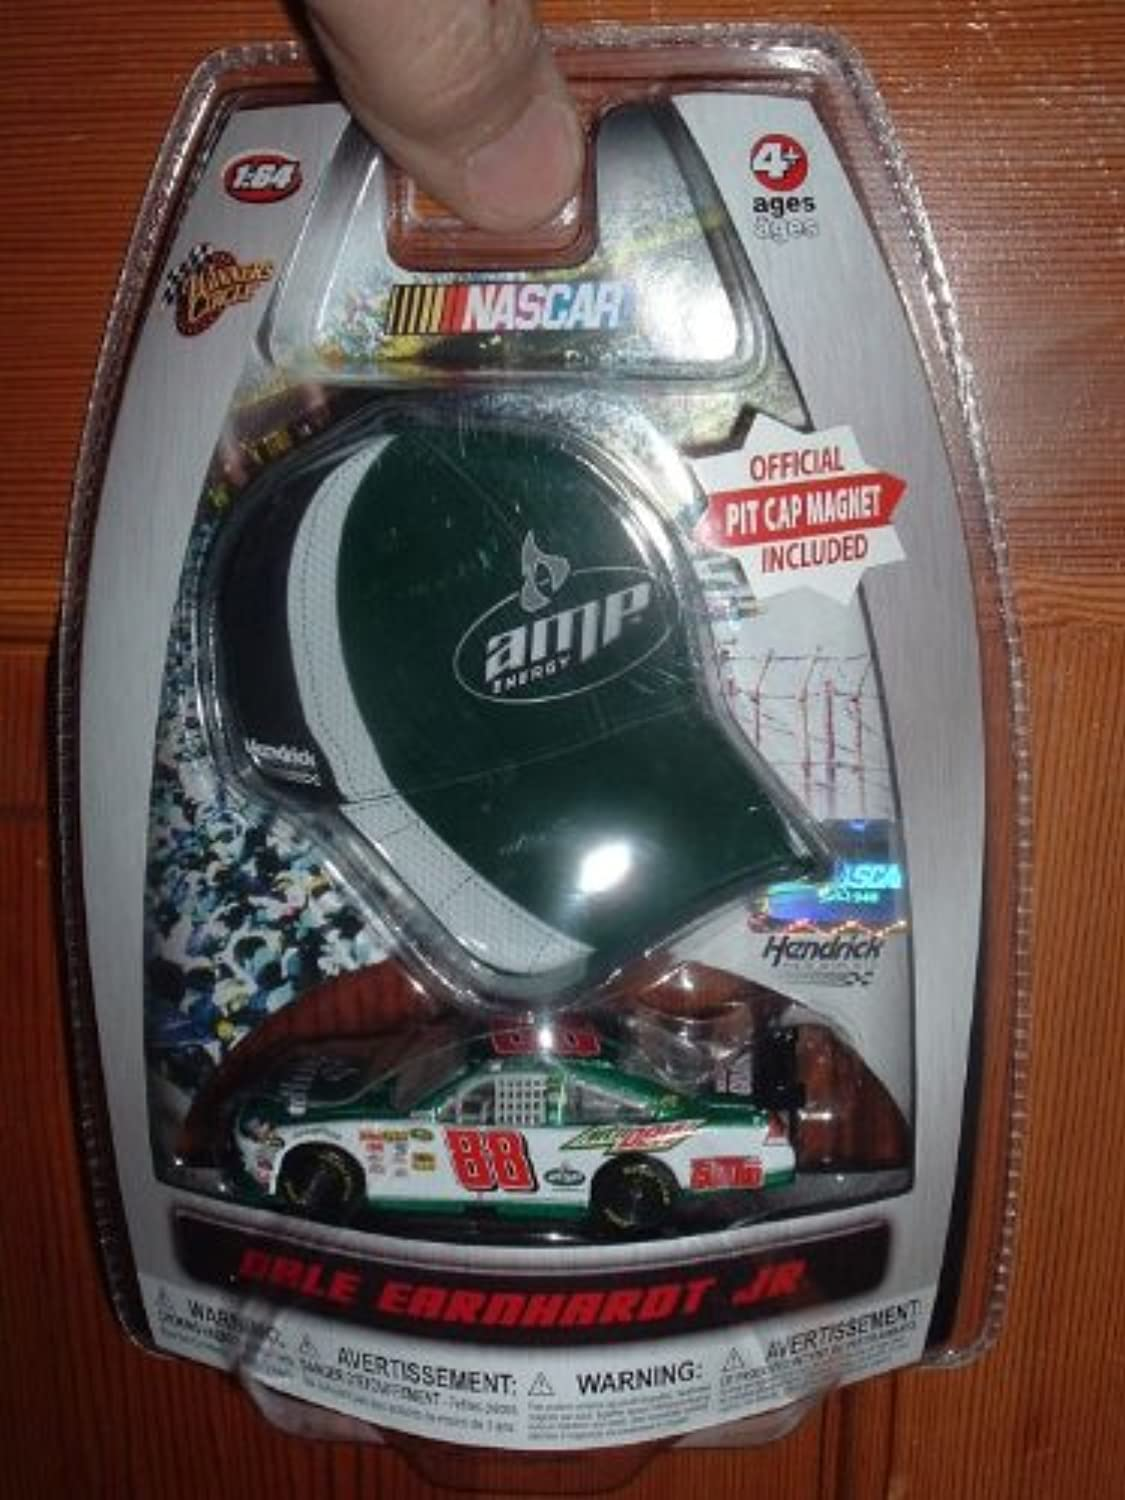 Dale Earnhardt Jr  88 AMP Energy Green White Chevy Impala SS COT 1 64 Scale Diecast & Bonus MiniReplica Official Pit Cap Magnet 2010 Winners Circle Edition by Winners Circle